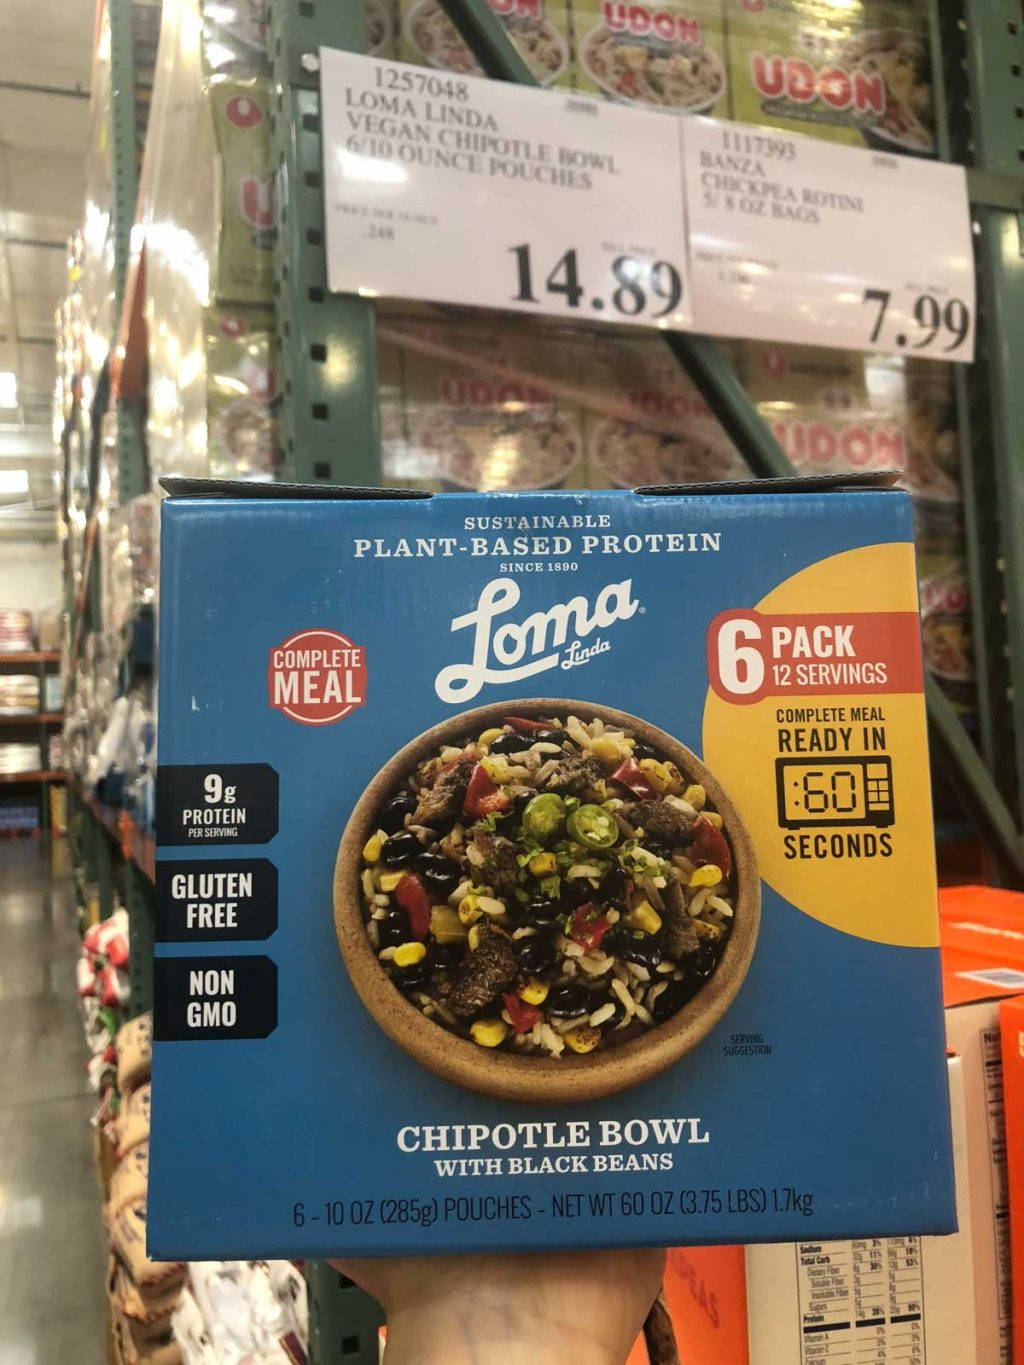 A hand holding a blue box of Loma Linda plant-based protein bowls for $14.89 at Costco.